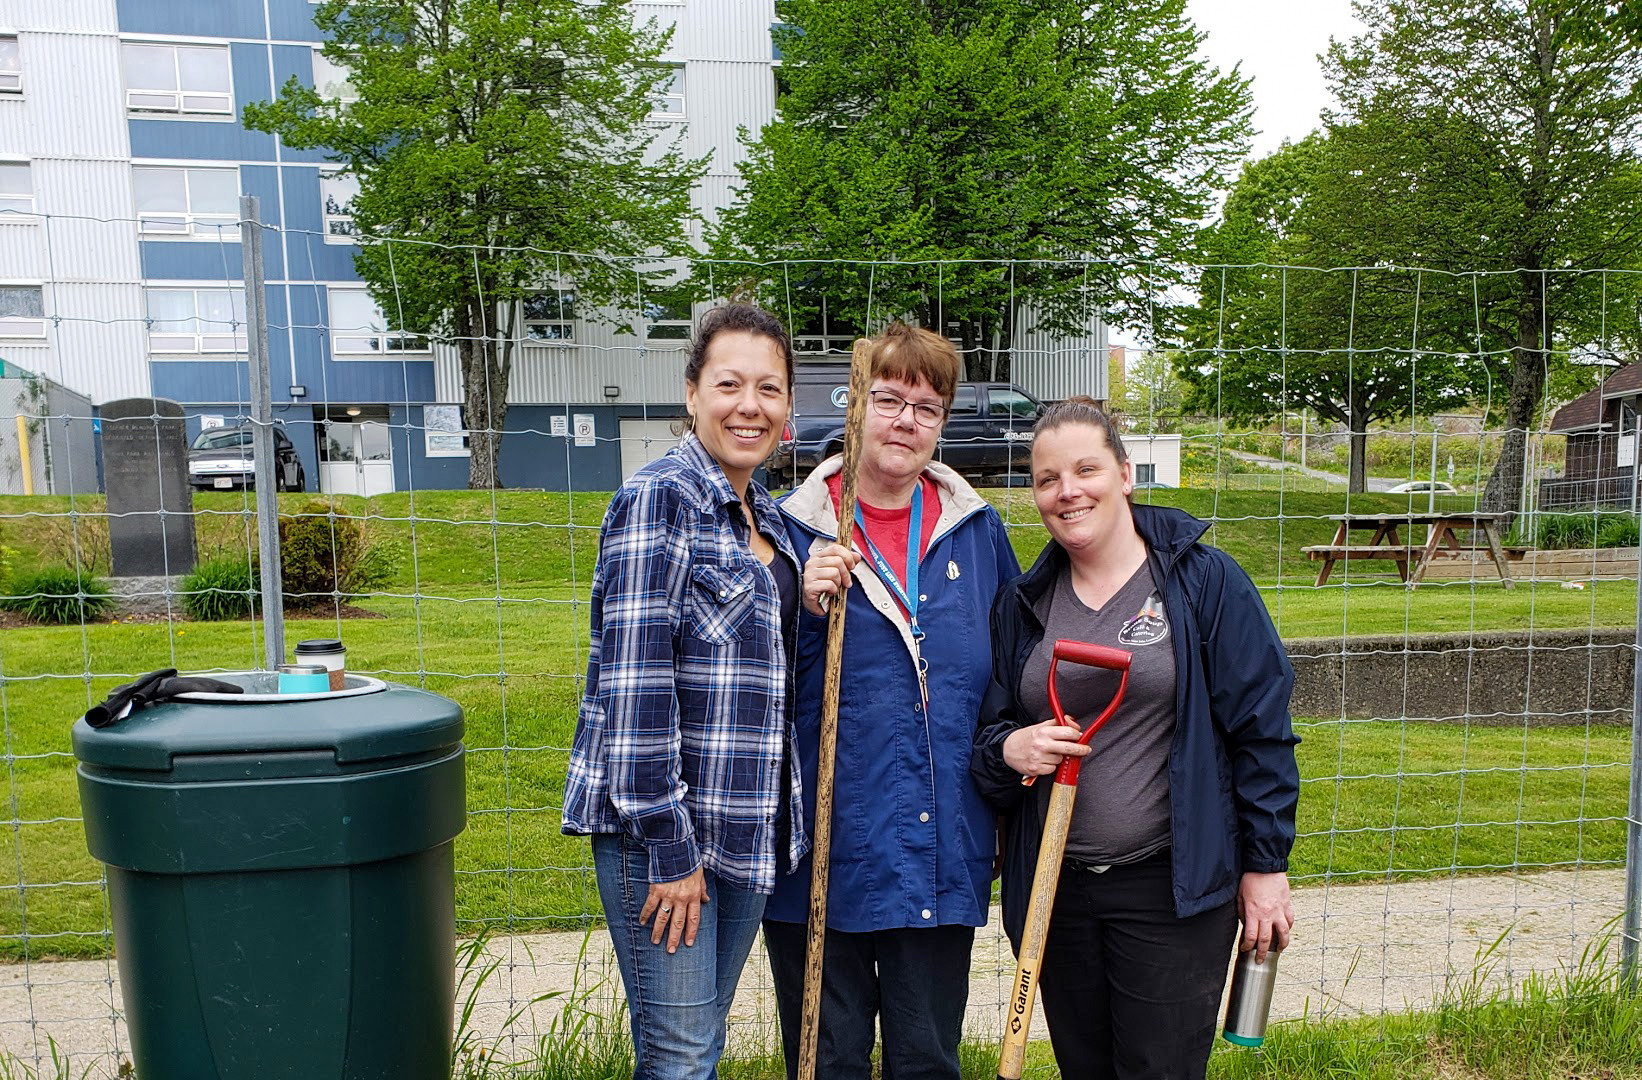 The Stone Soup Team at the Community Garden